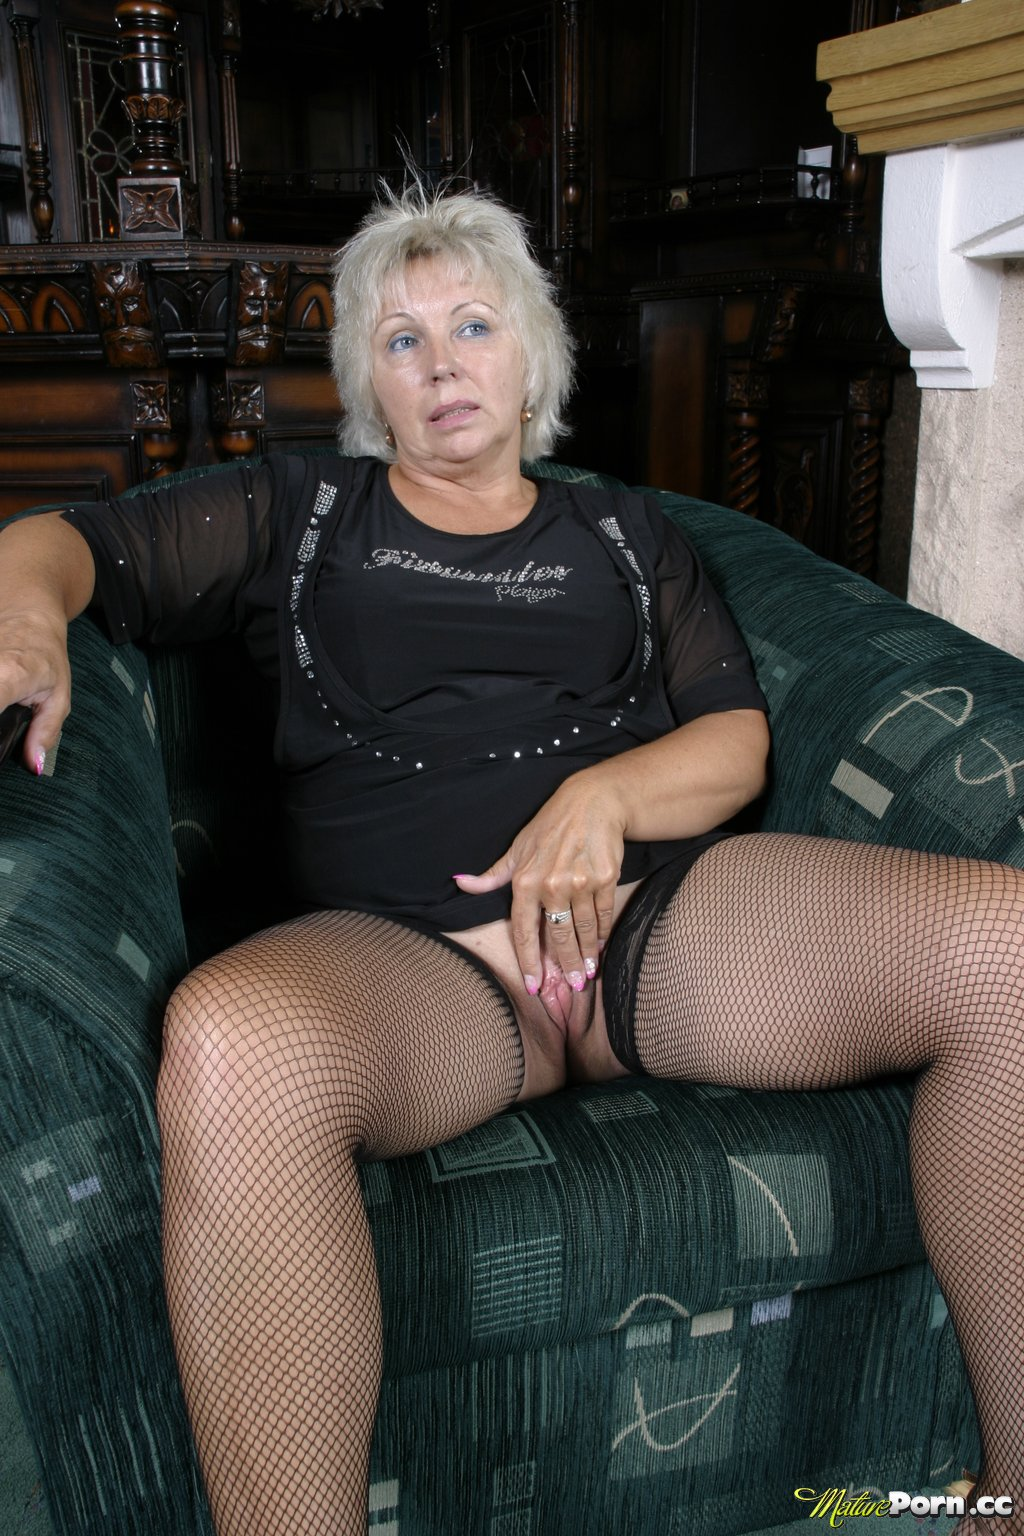 ... MILF / Granny Full Length Online Streaming and Downloadable Videos: fhg.matureporn.cc/pic/025/?id=jennyxxx""